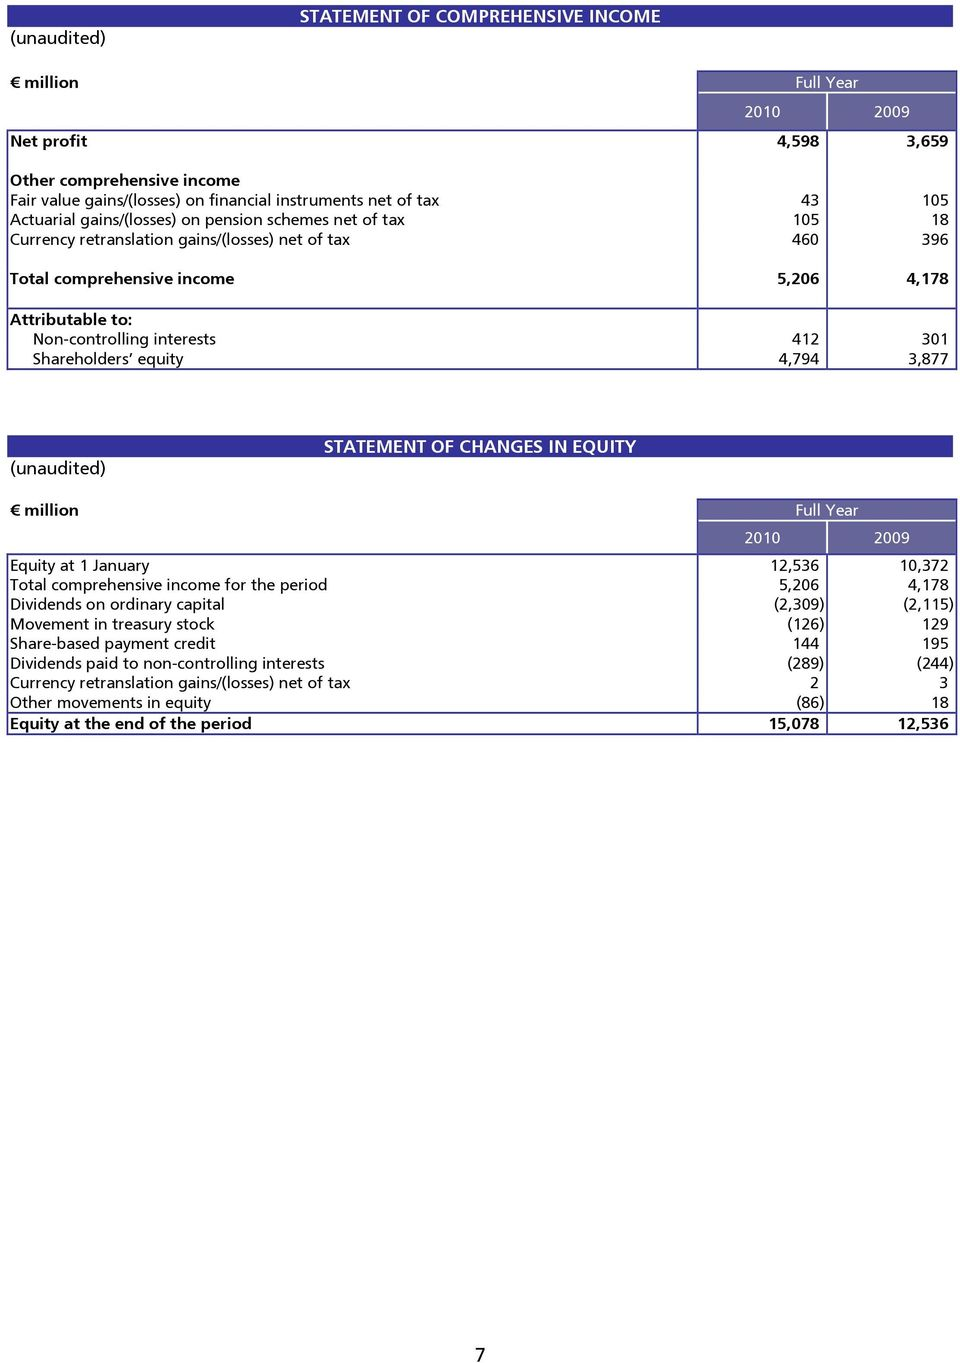 Shareholders equity 4,794 3,877 (unaudited) STATEMENT OF CHANGES IN EQUITY million Full Year 2010 2009 Equity at 1 January 12,536 10,372 Total comprehensive income for the period 5,206 4,178